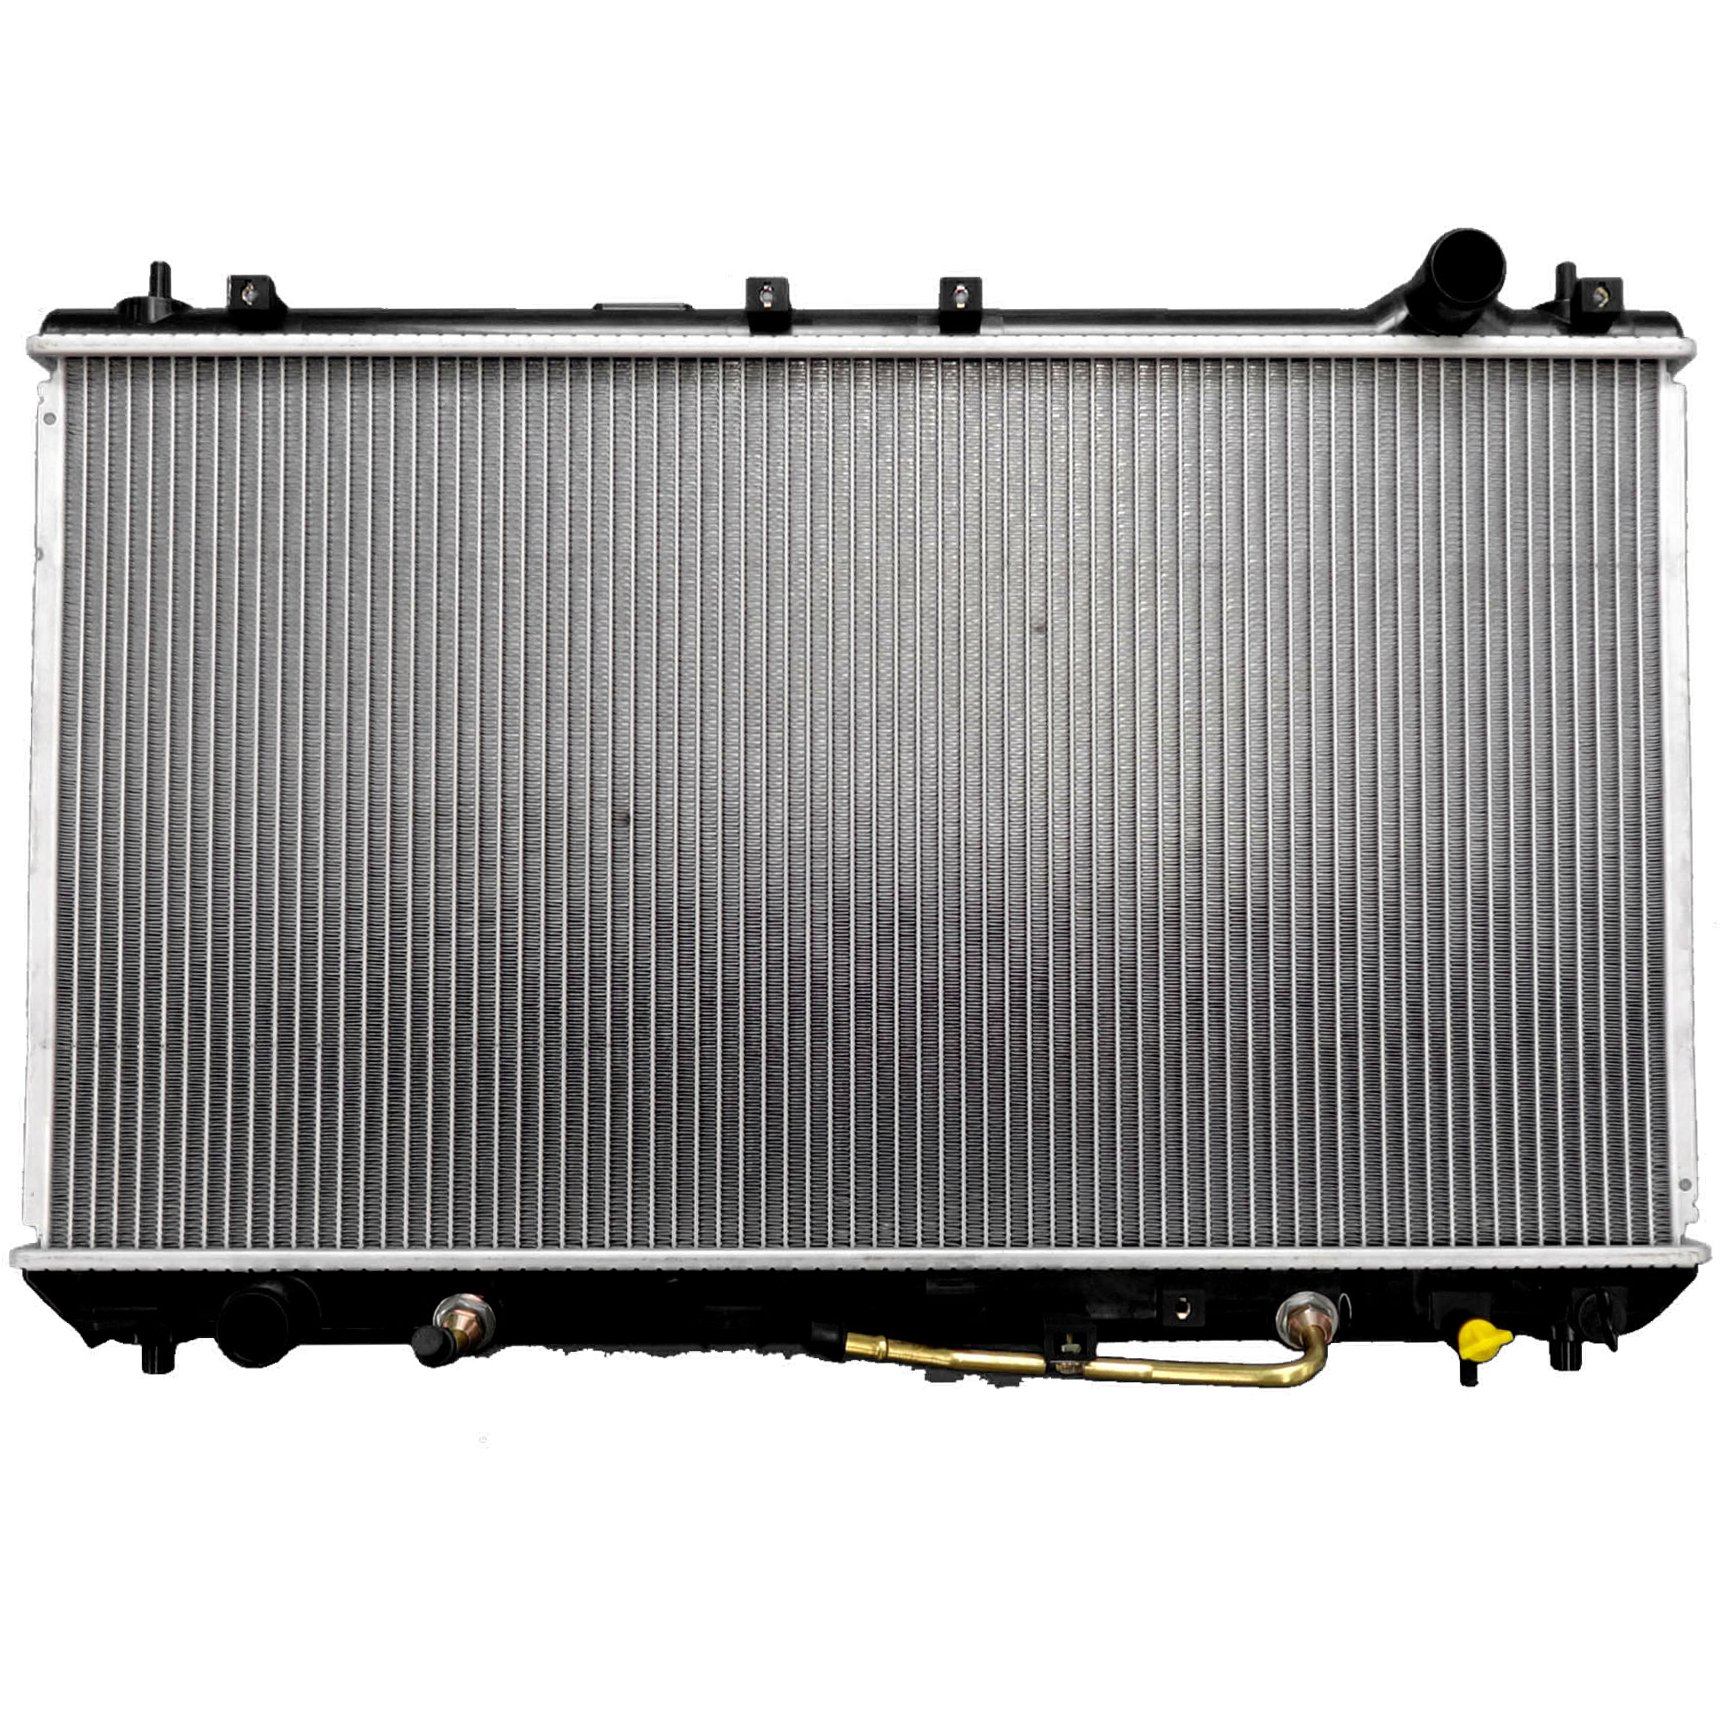 SCITOO Radiator 1910 fit 1997-2001 Lexus ES300 Toyota Camry CE V6 1997-2001 Toyota Solara 3.0L by SCITOO